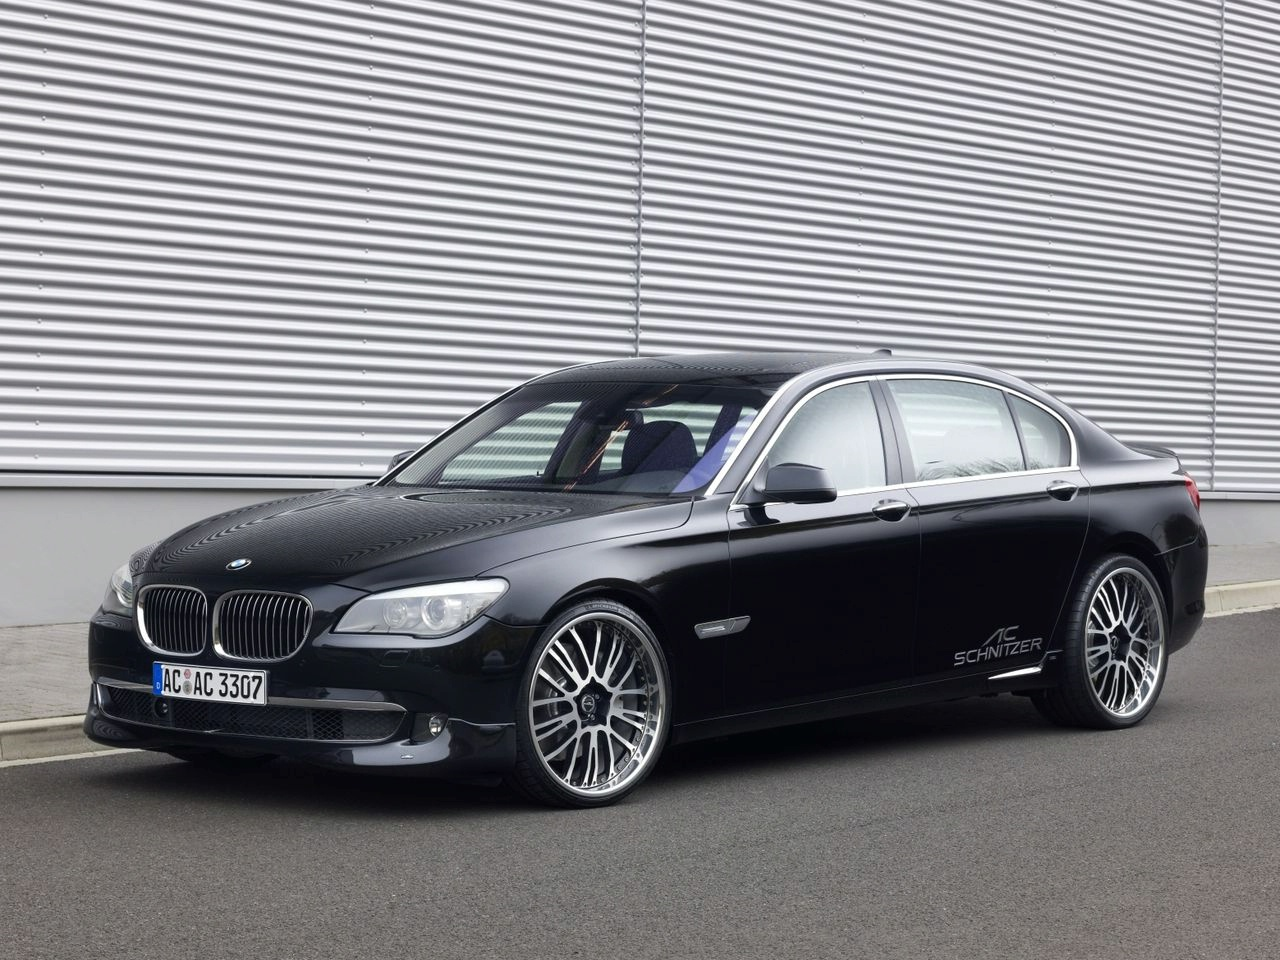 bmw 7 series 750li 1280x720 car wallpaper. Black Bedroom Furniture Sets. Home Design Ideas